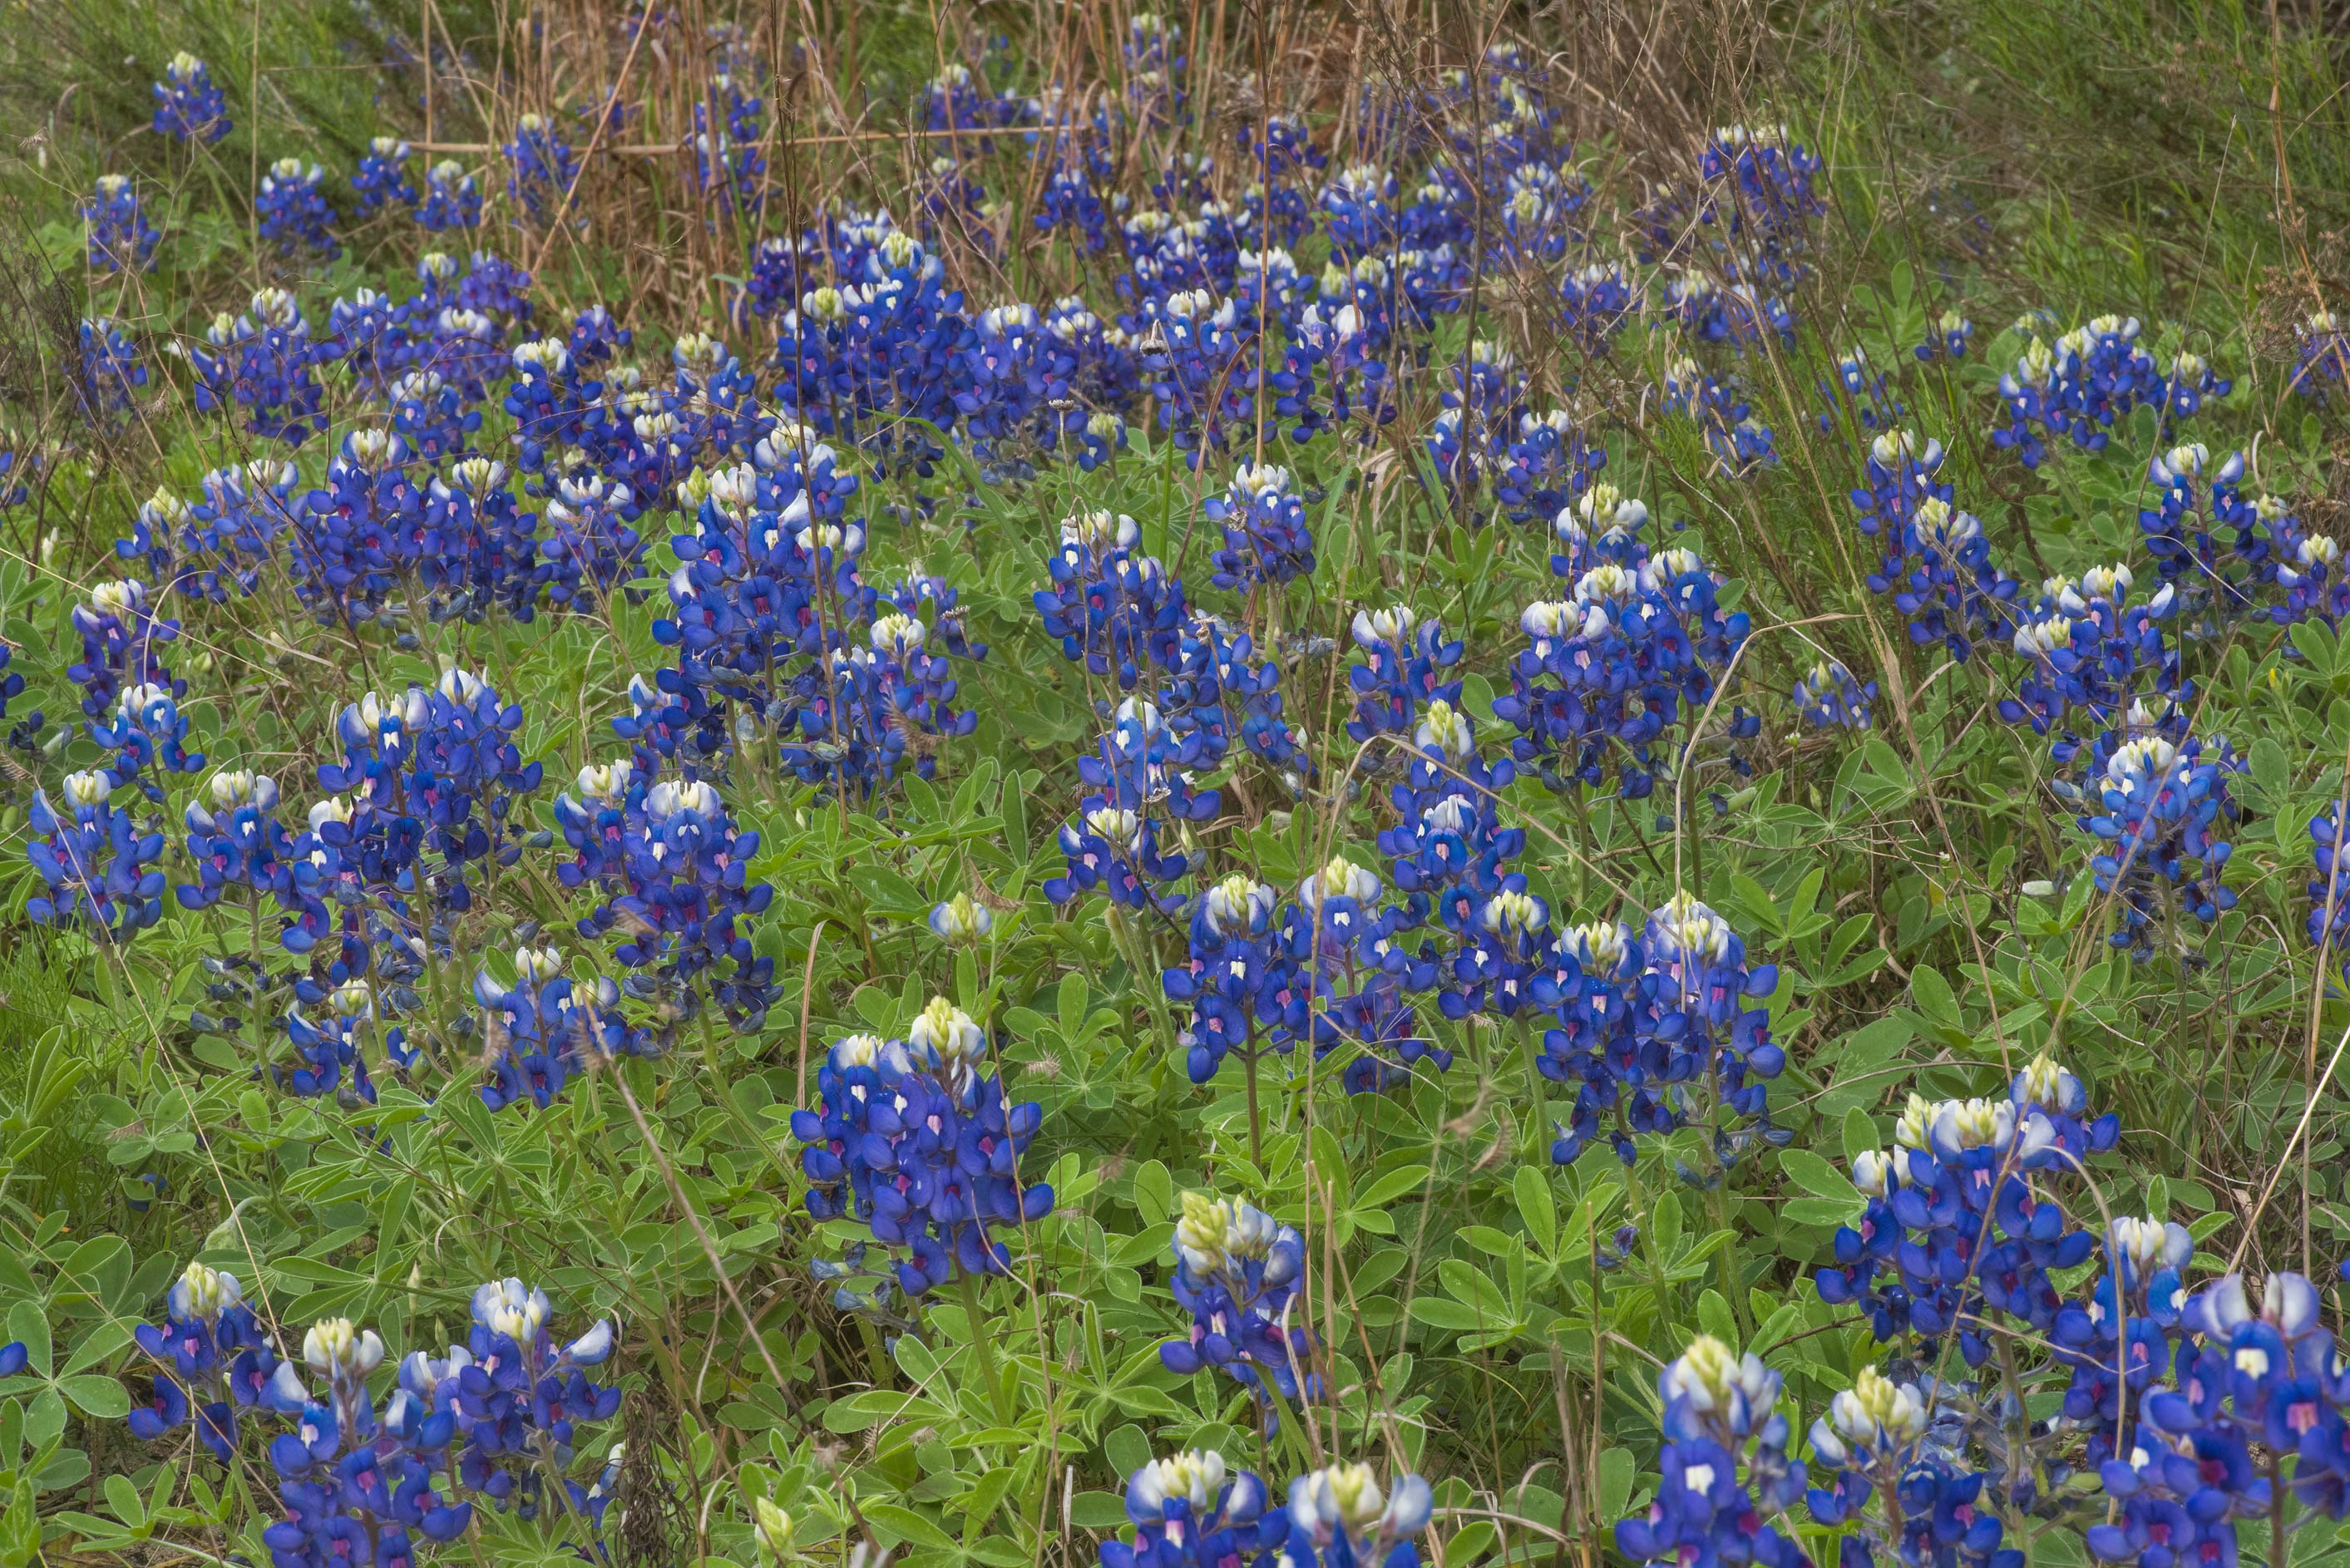 Flowers of bluebonnet (Lupinus) on Moore's Hill...miles north-east from Navasota. Texas